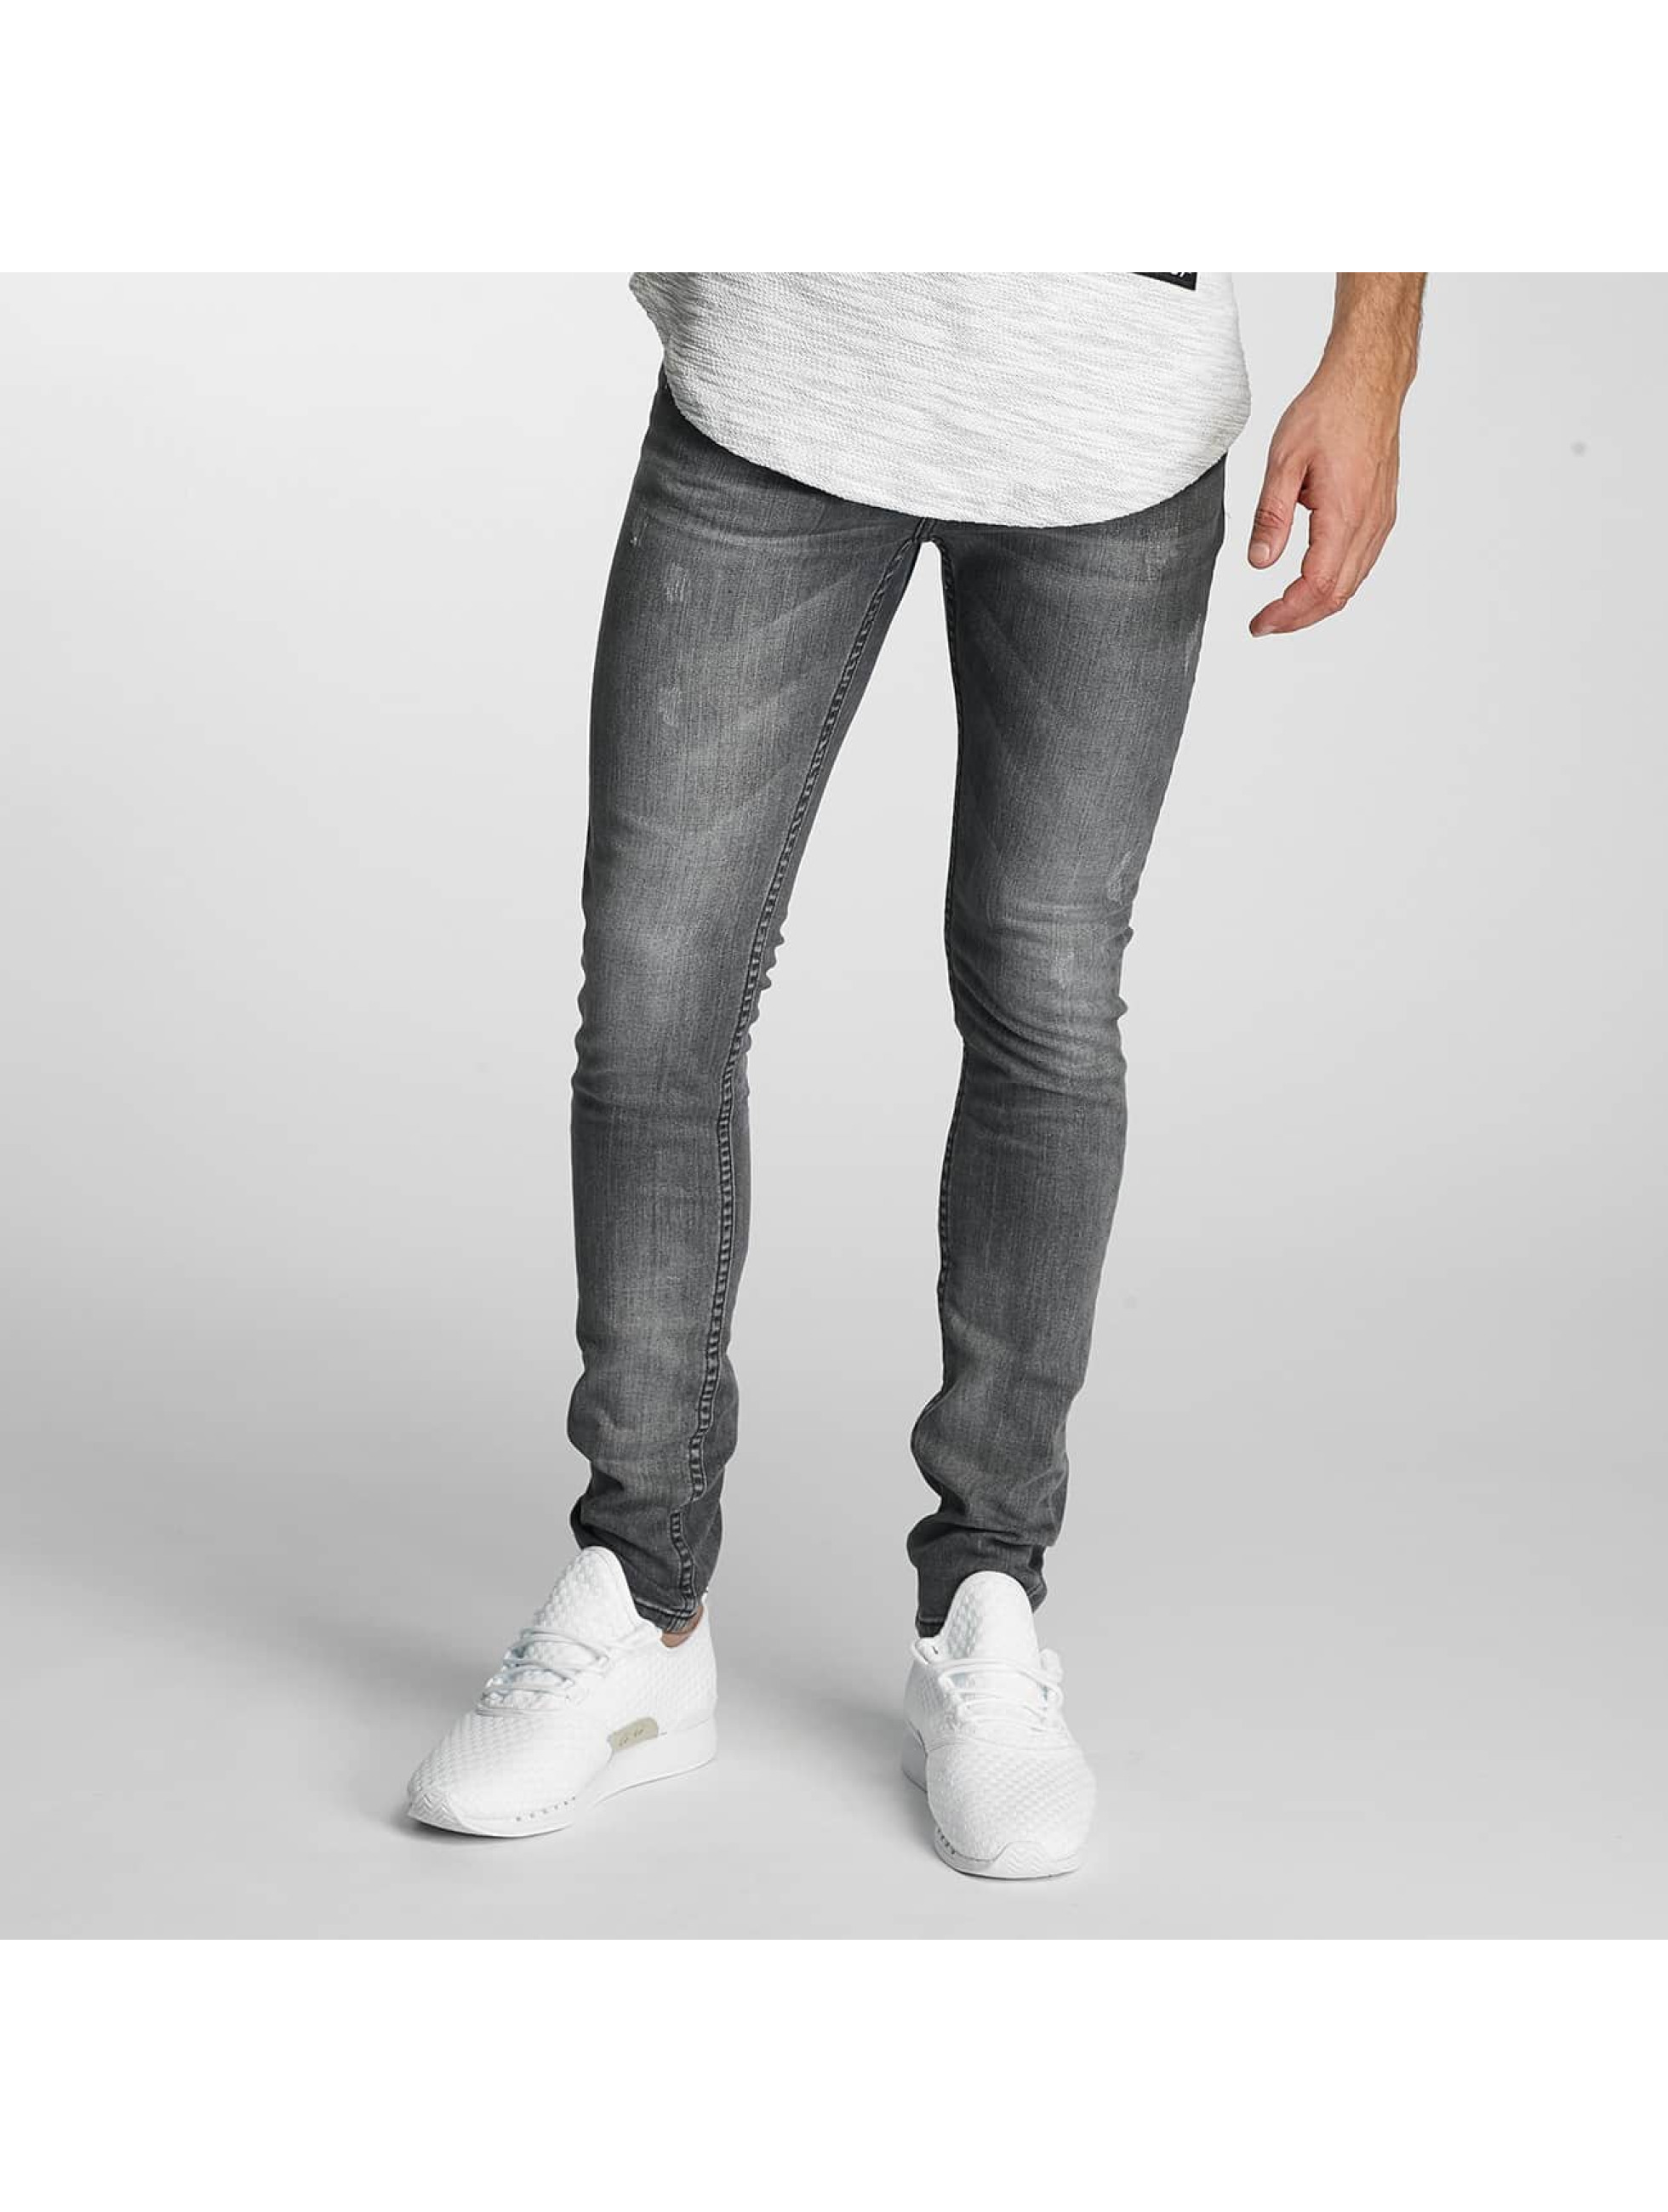 Paris Premium Slim Fit Jeans Almond grau